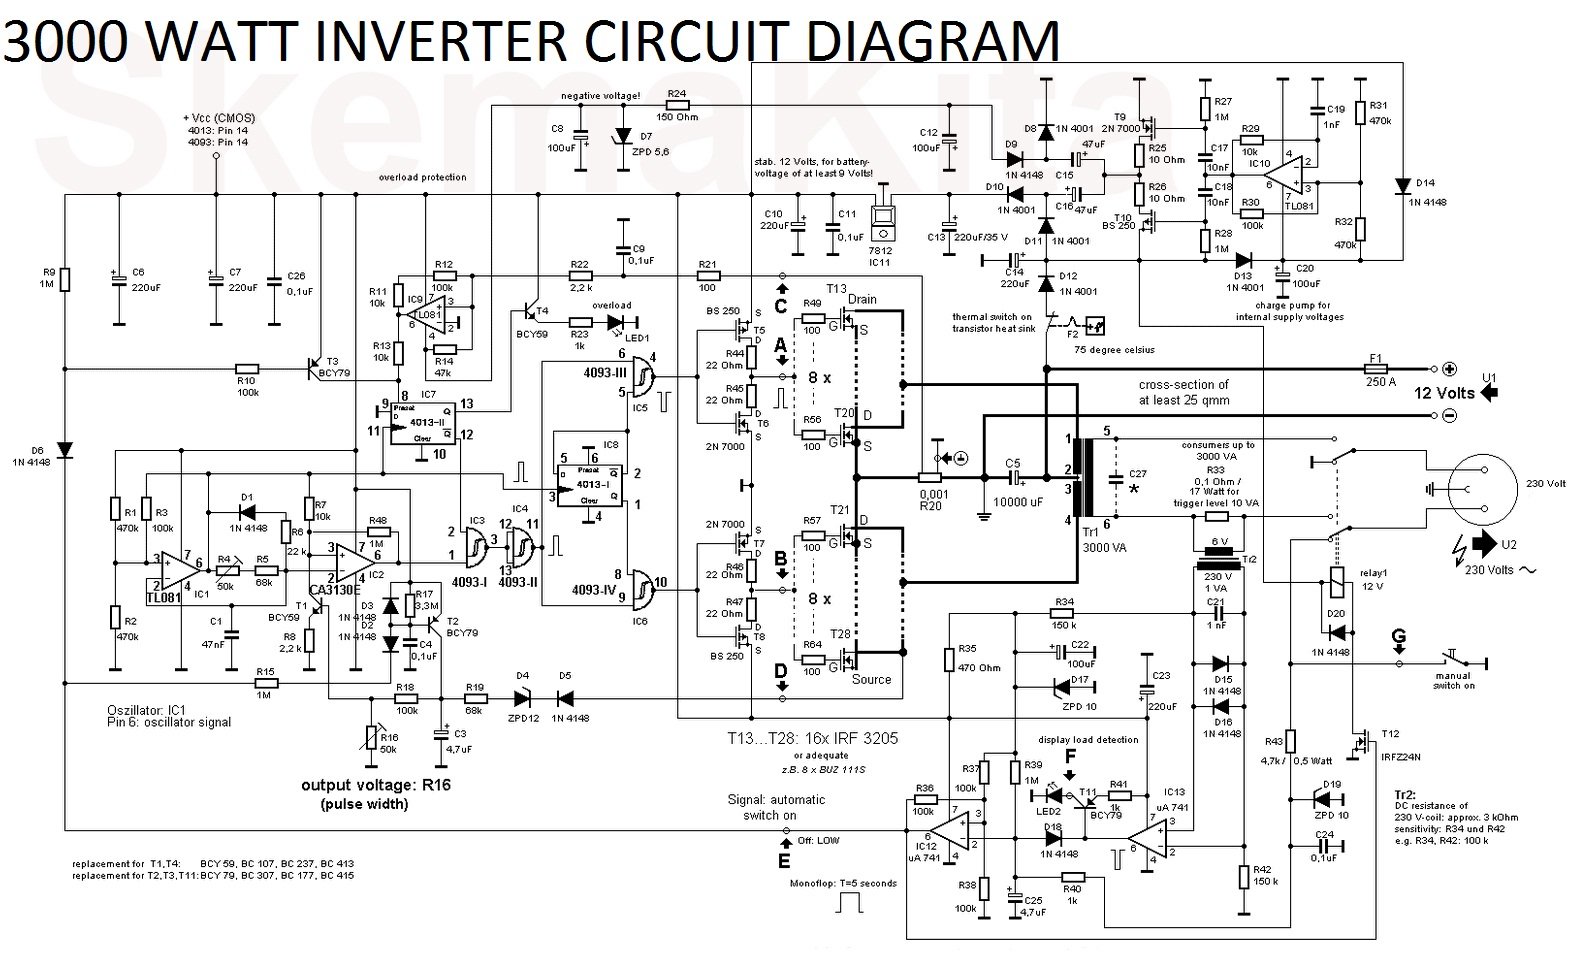 Watt Inverter Circuit Diagram